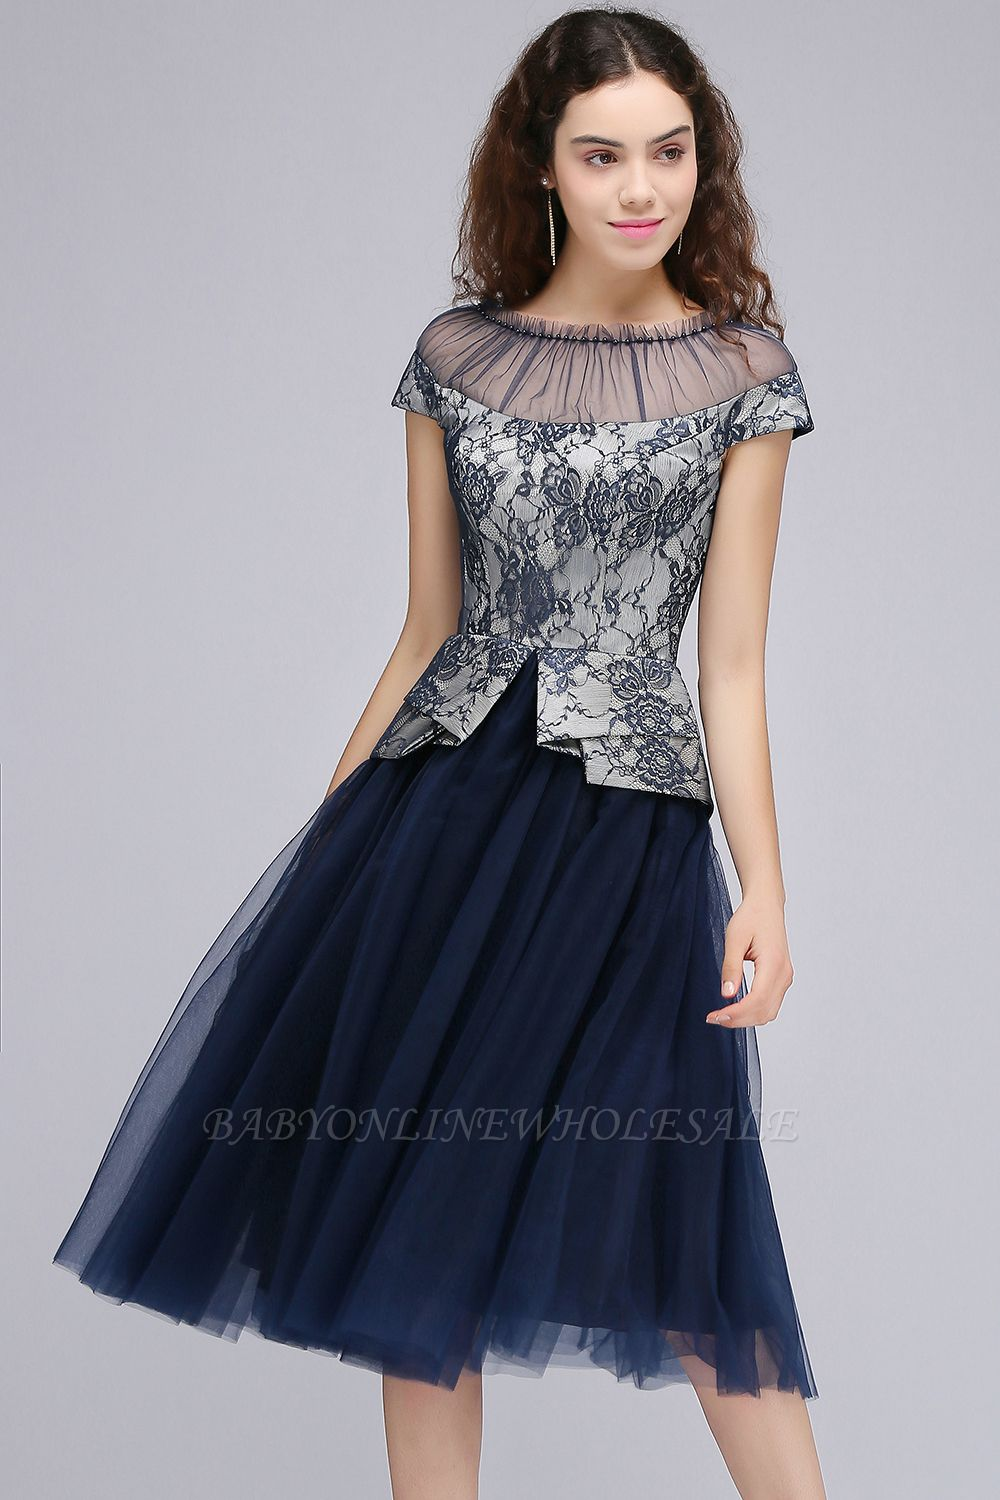 BRIDGET | A-Line Round Neck Knee-Length Tulle Lace Dark Navy Homecoming Dresses